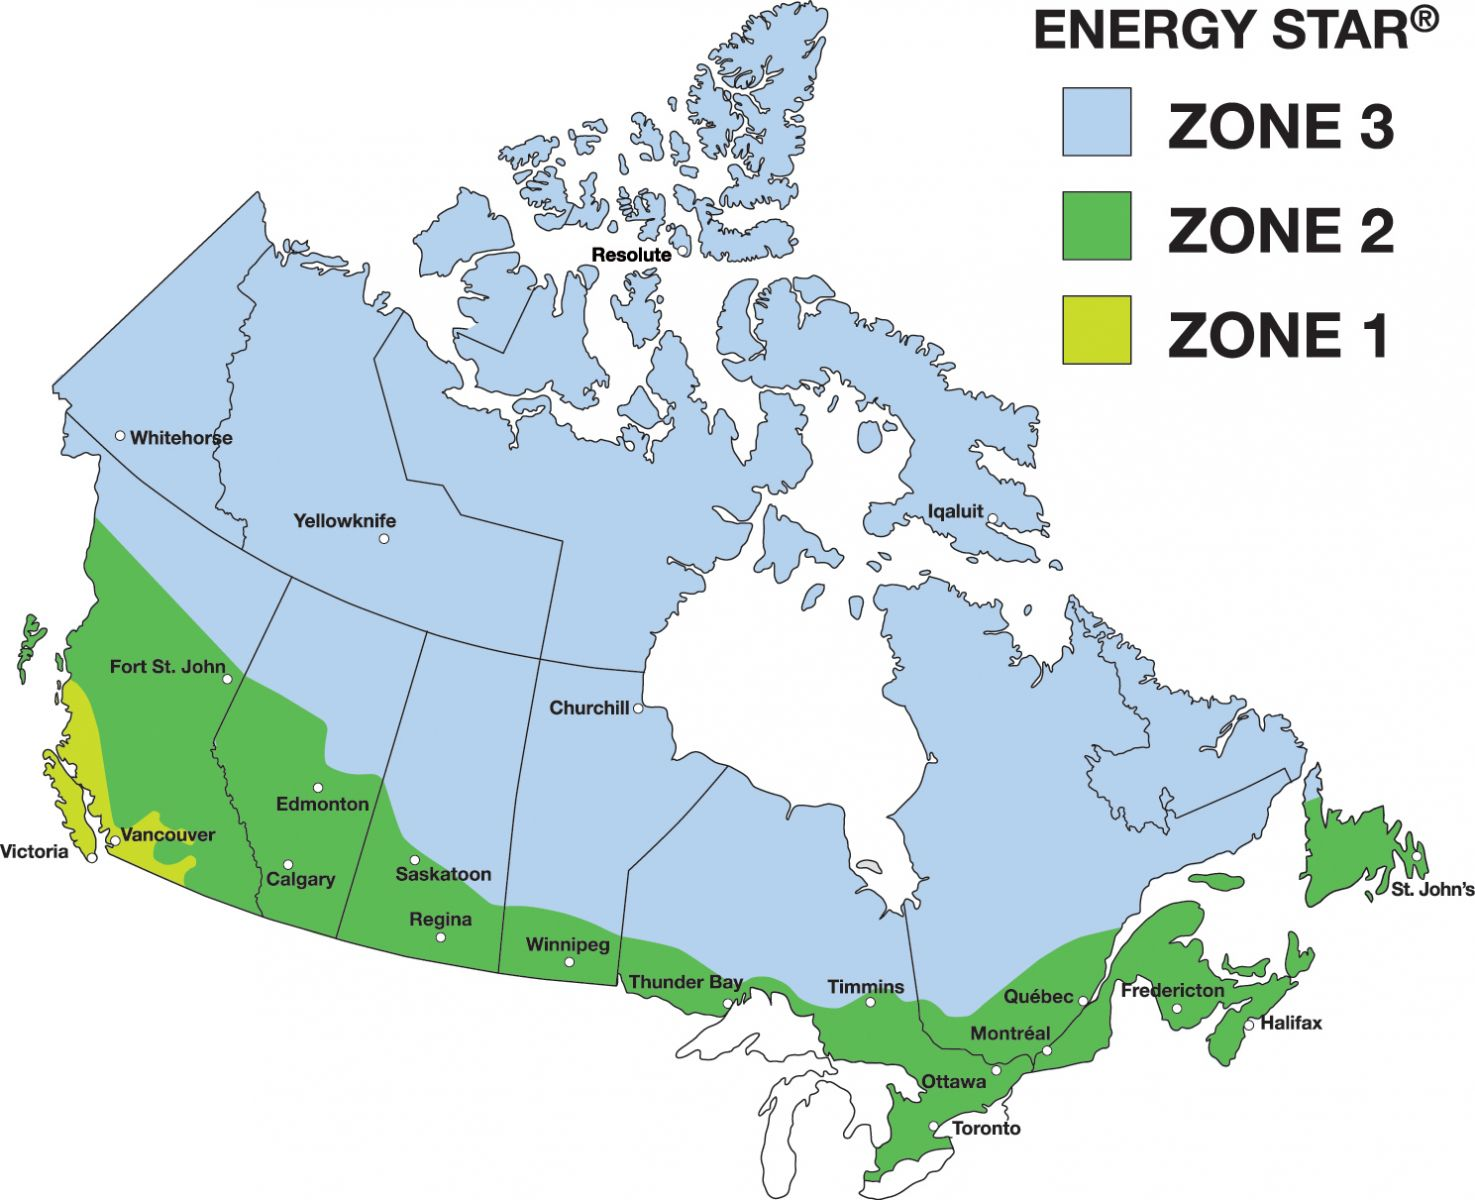 Climate zone map divided into